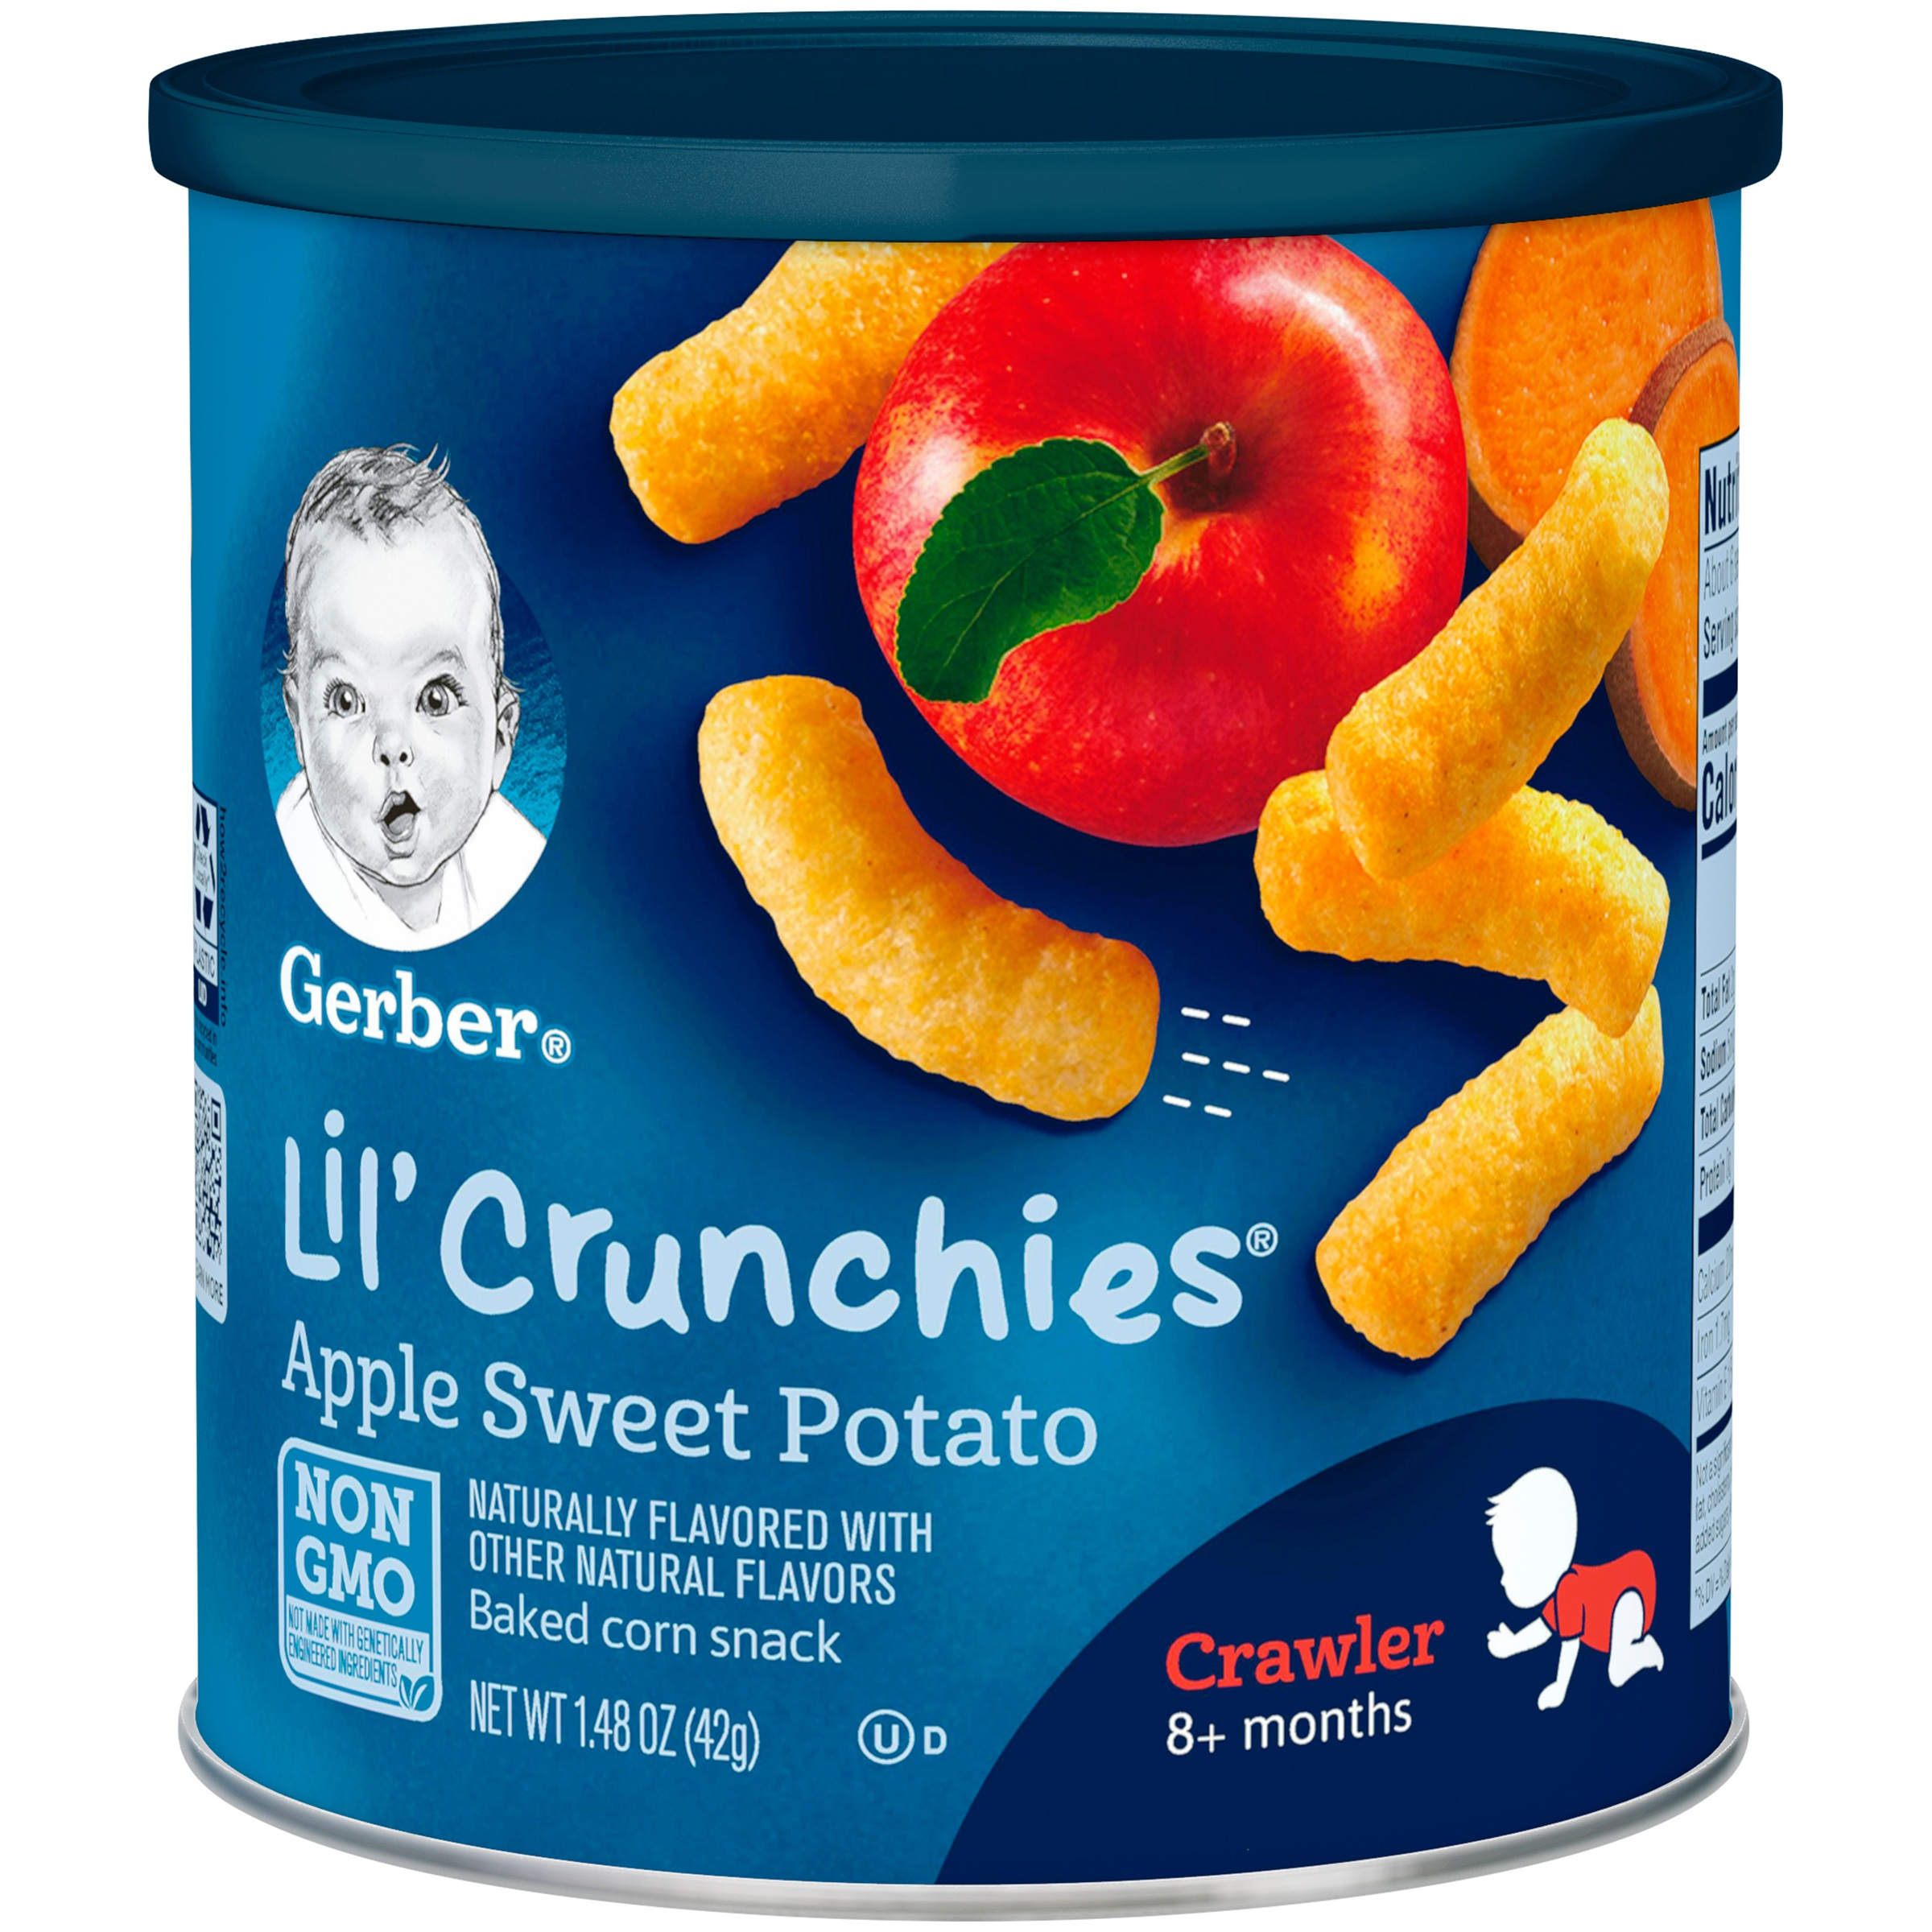 Gerber Lil' Crunchies Baked Whole Grain Corn Snack, Apple Sweet Potato, 1.48 oz. Canister